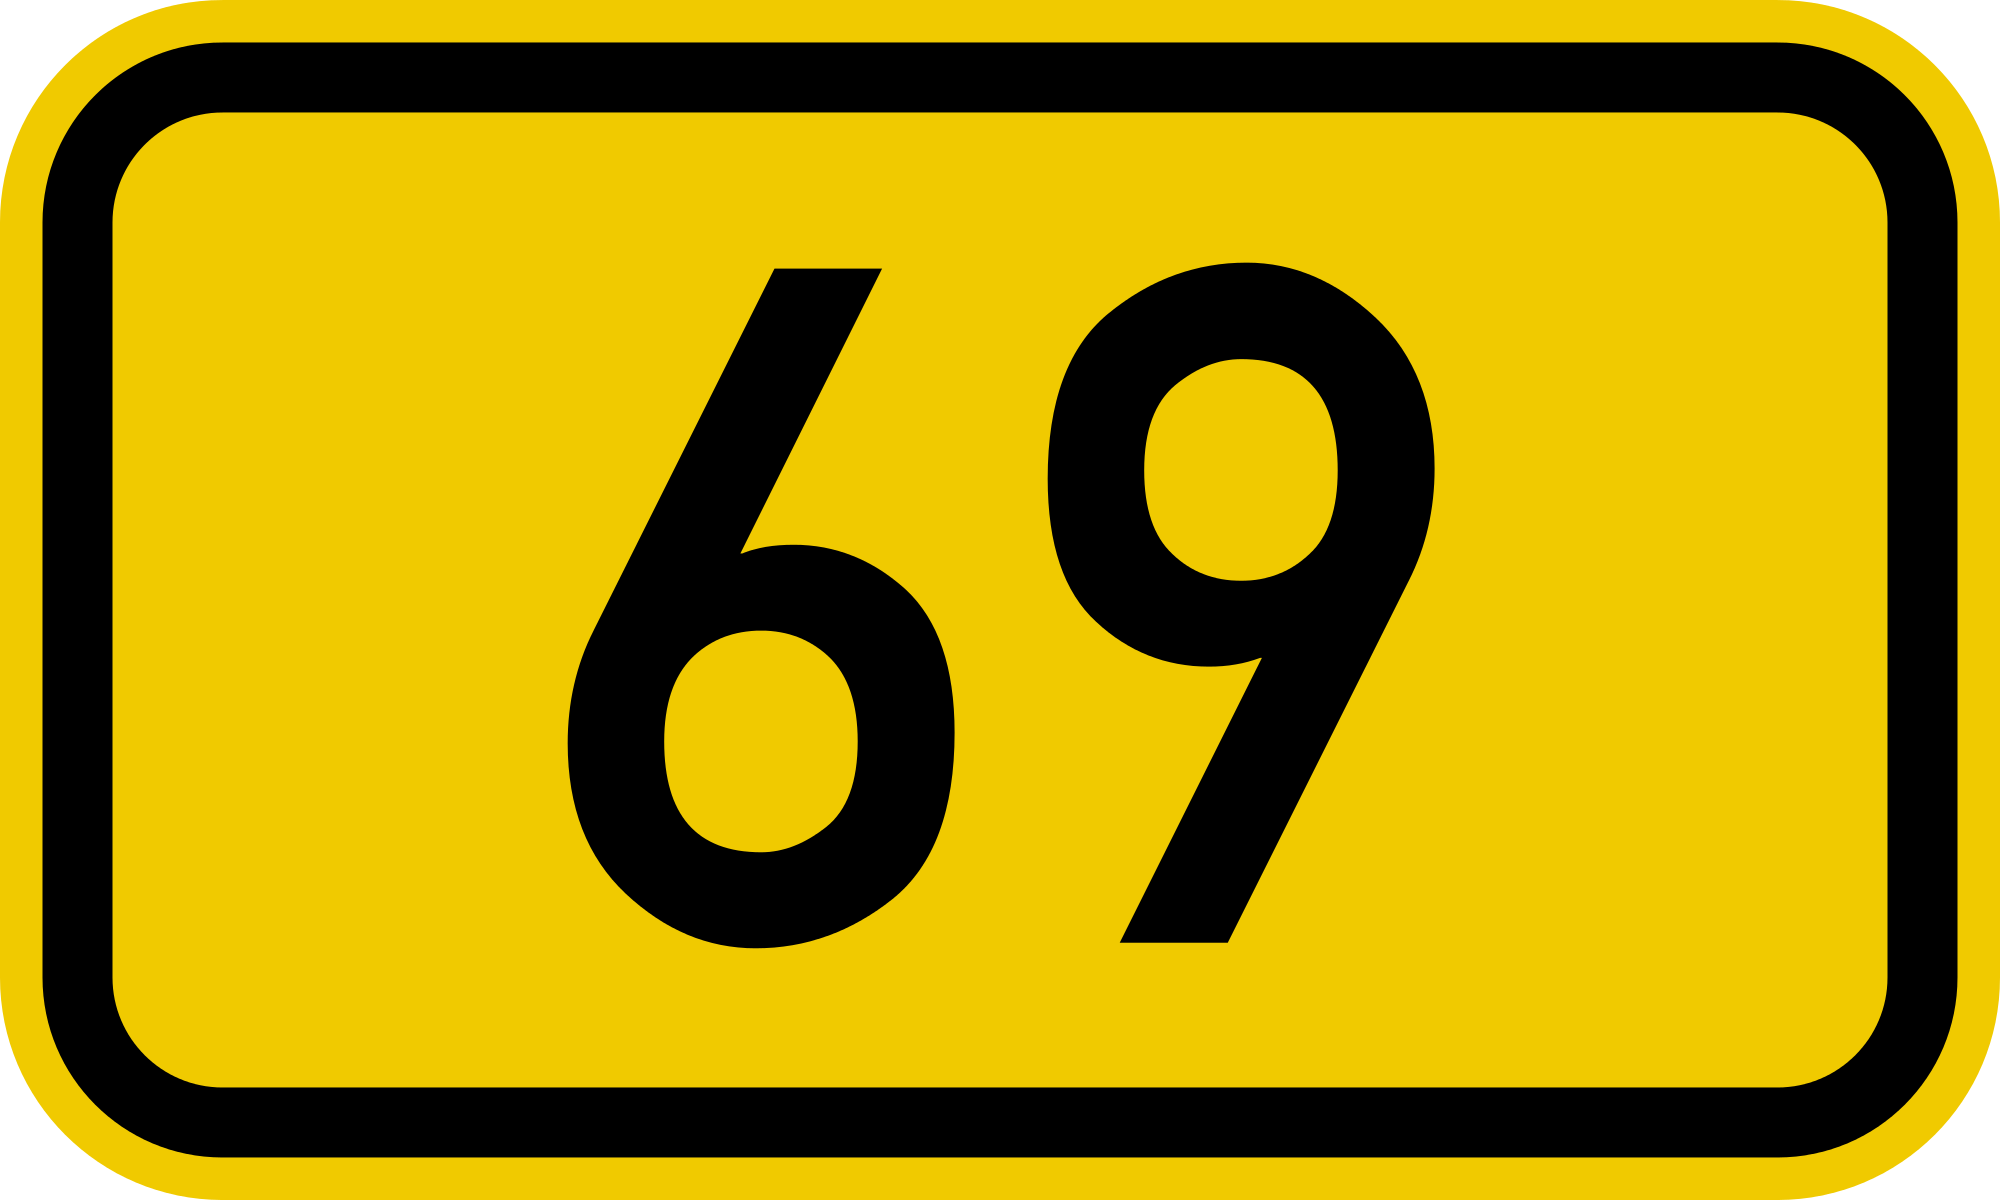 Yes, 69 is divine